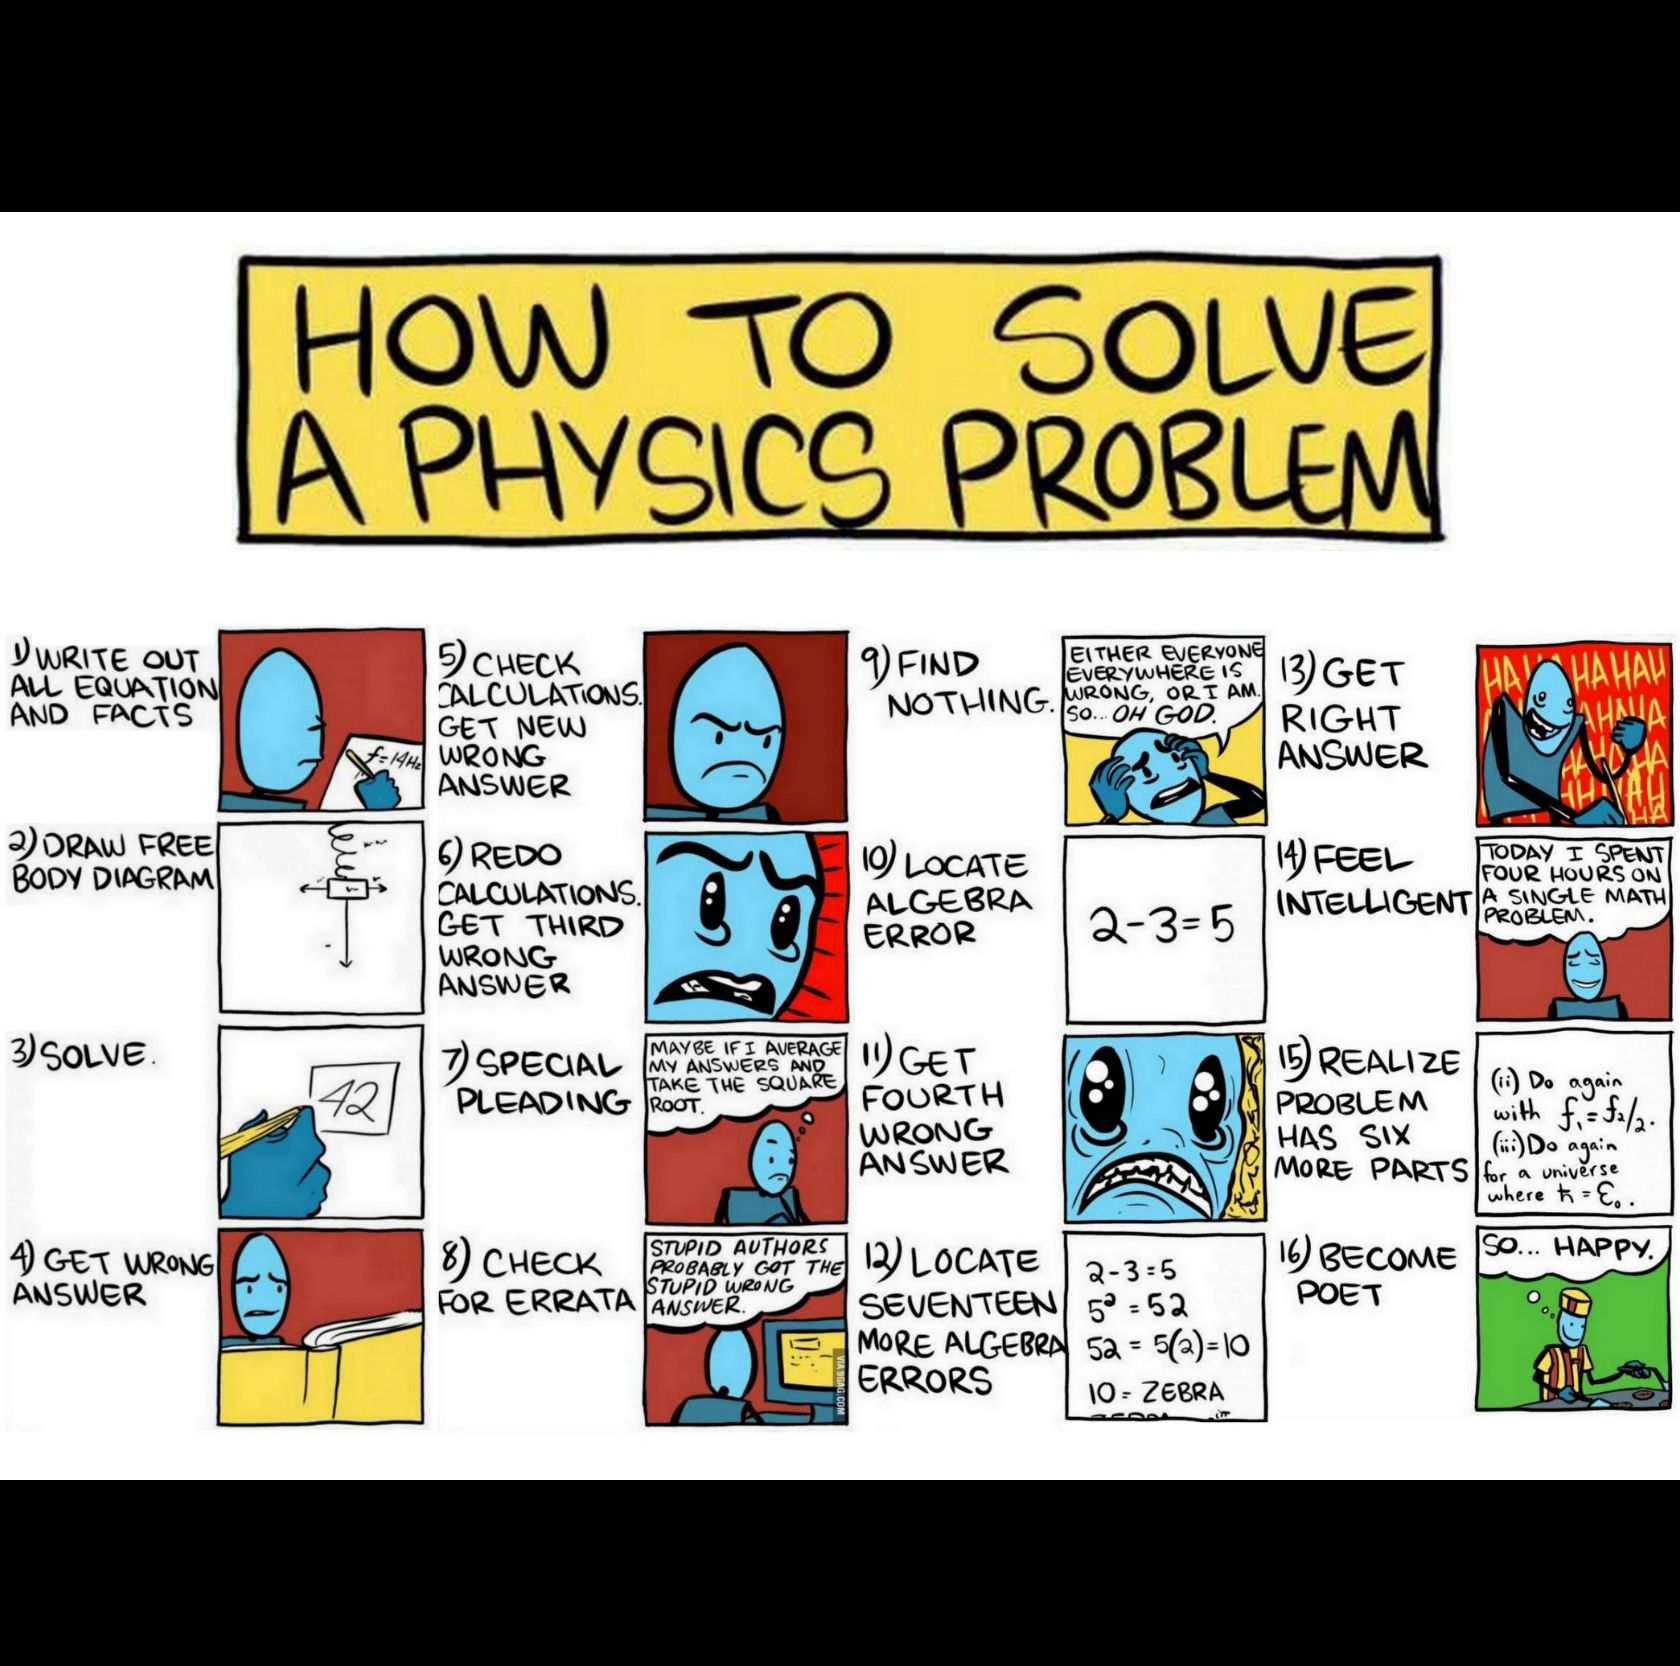 How To Solve A Physics Problem Imgur Study Pinterest Solving Body Diagrams